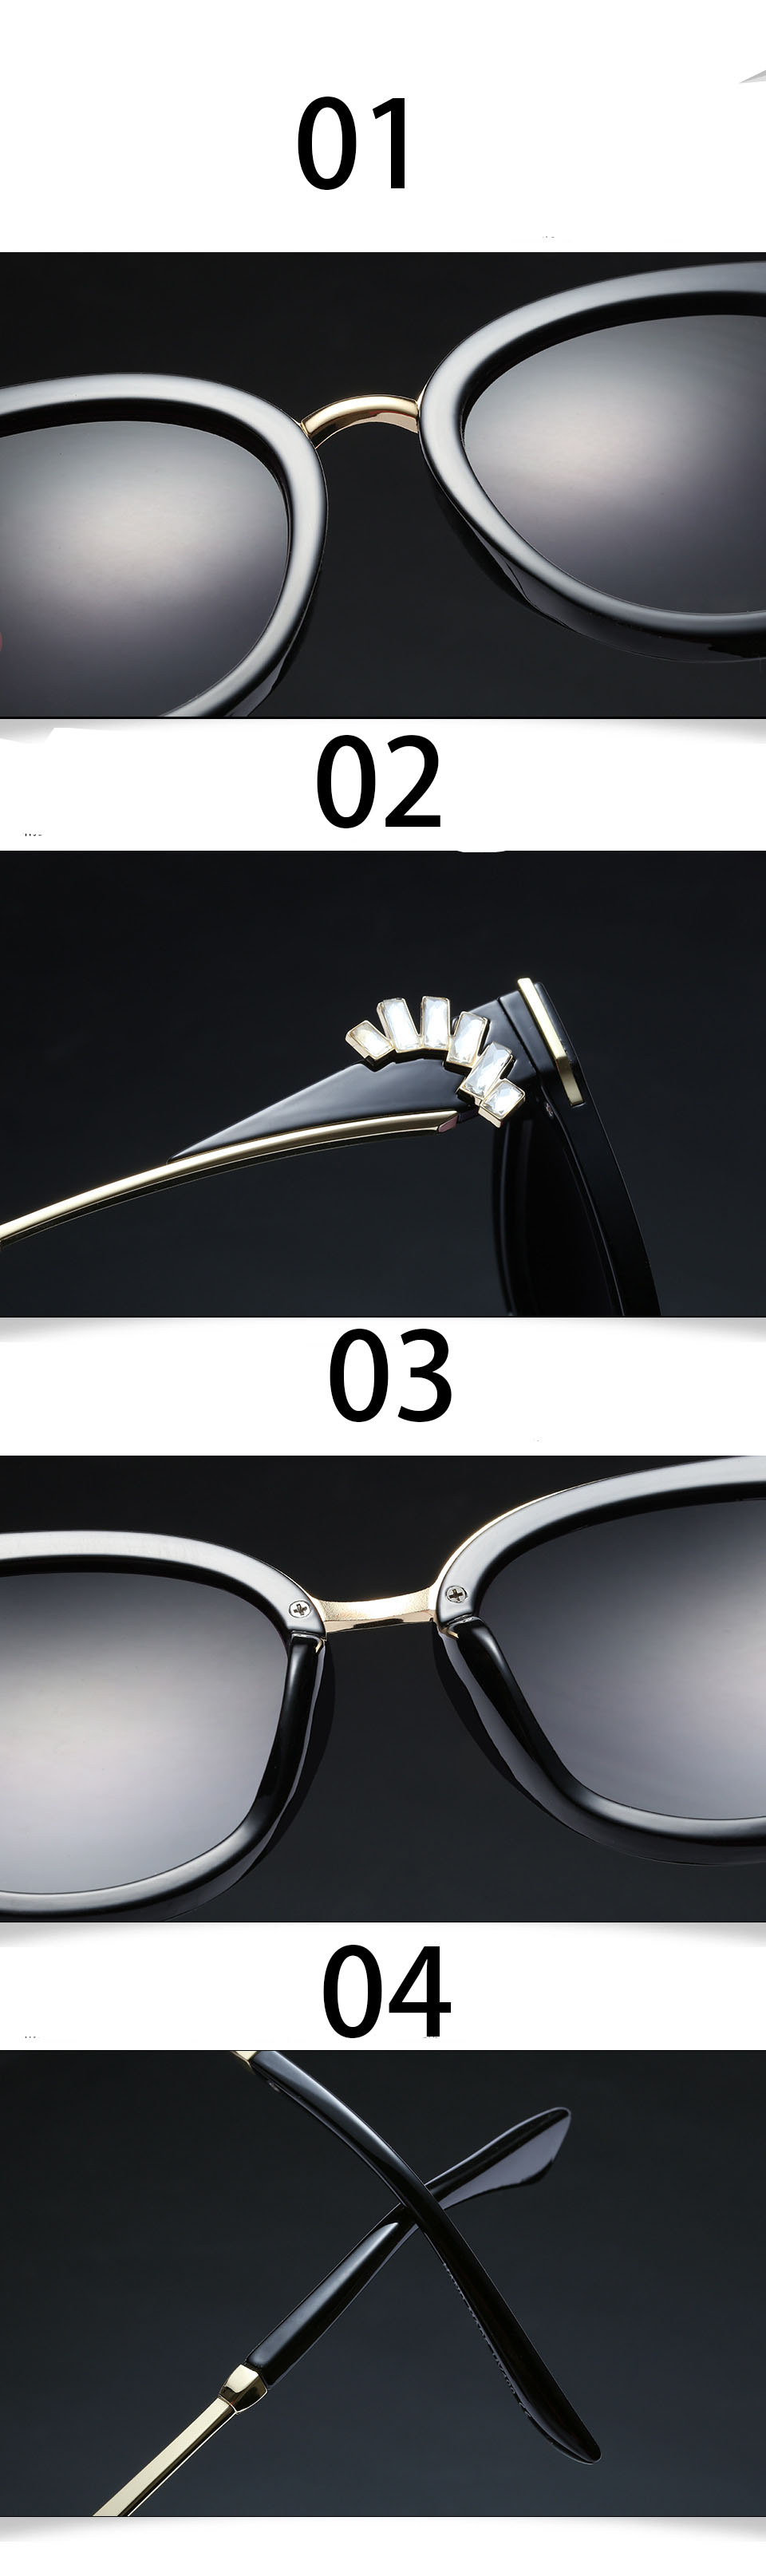 HTB1jzEdXPihSKJjy0Ffq6zGzFXan - Oversized Crystal Acetate Black Cat Eye Sunglasses 2018